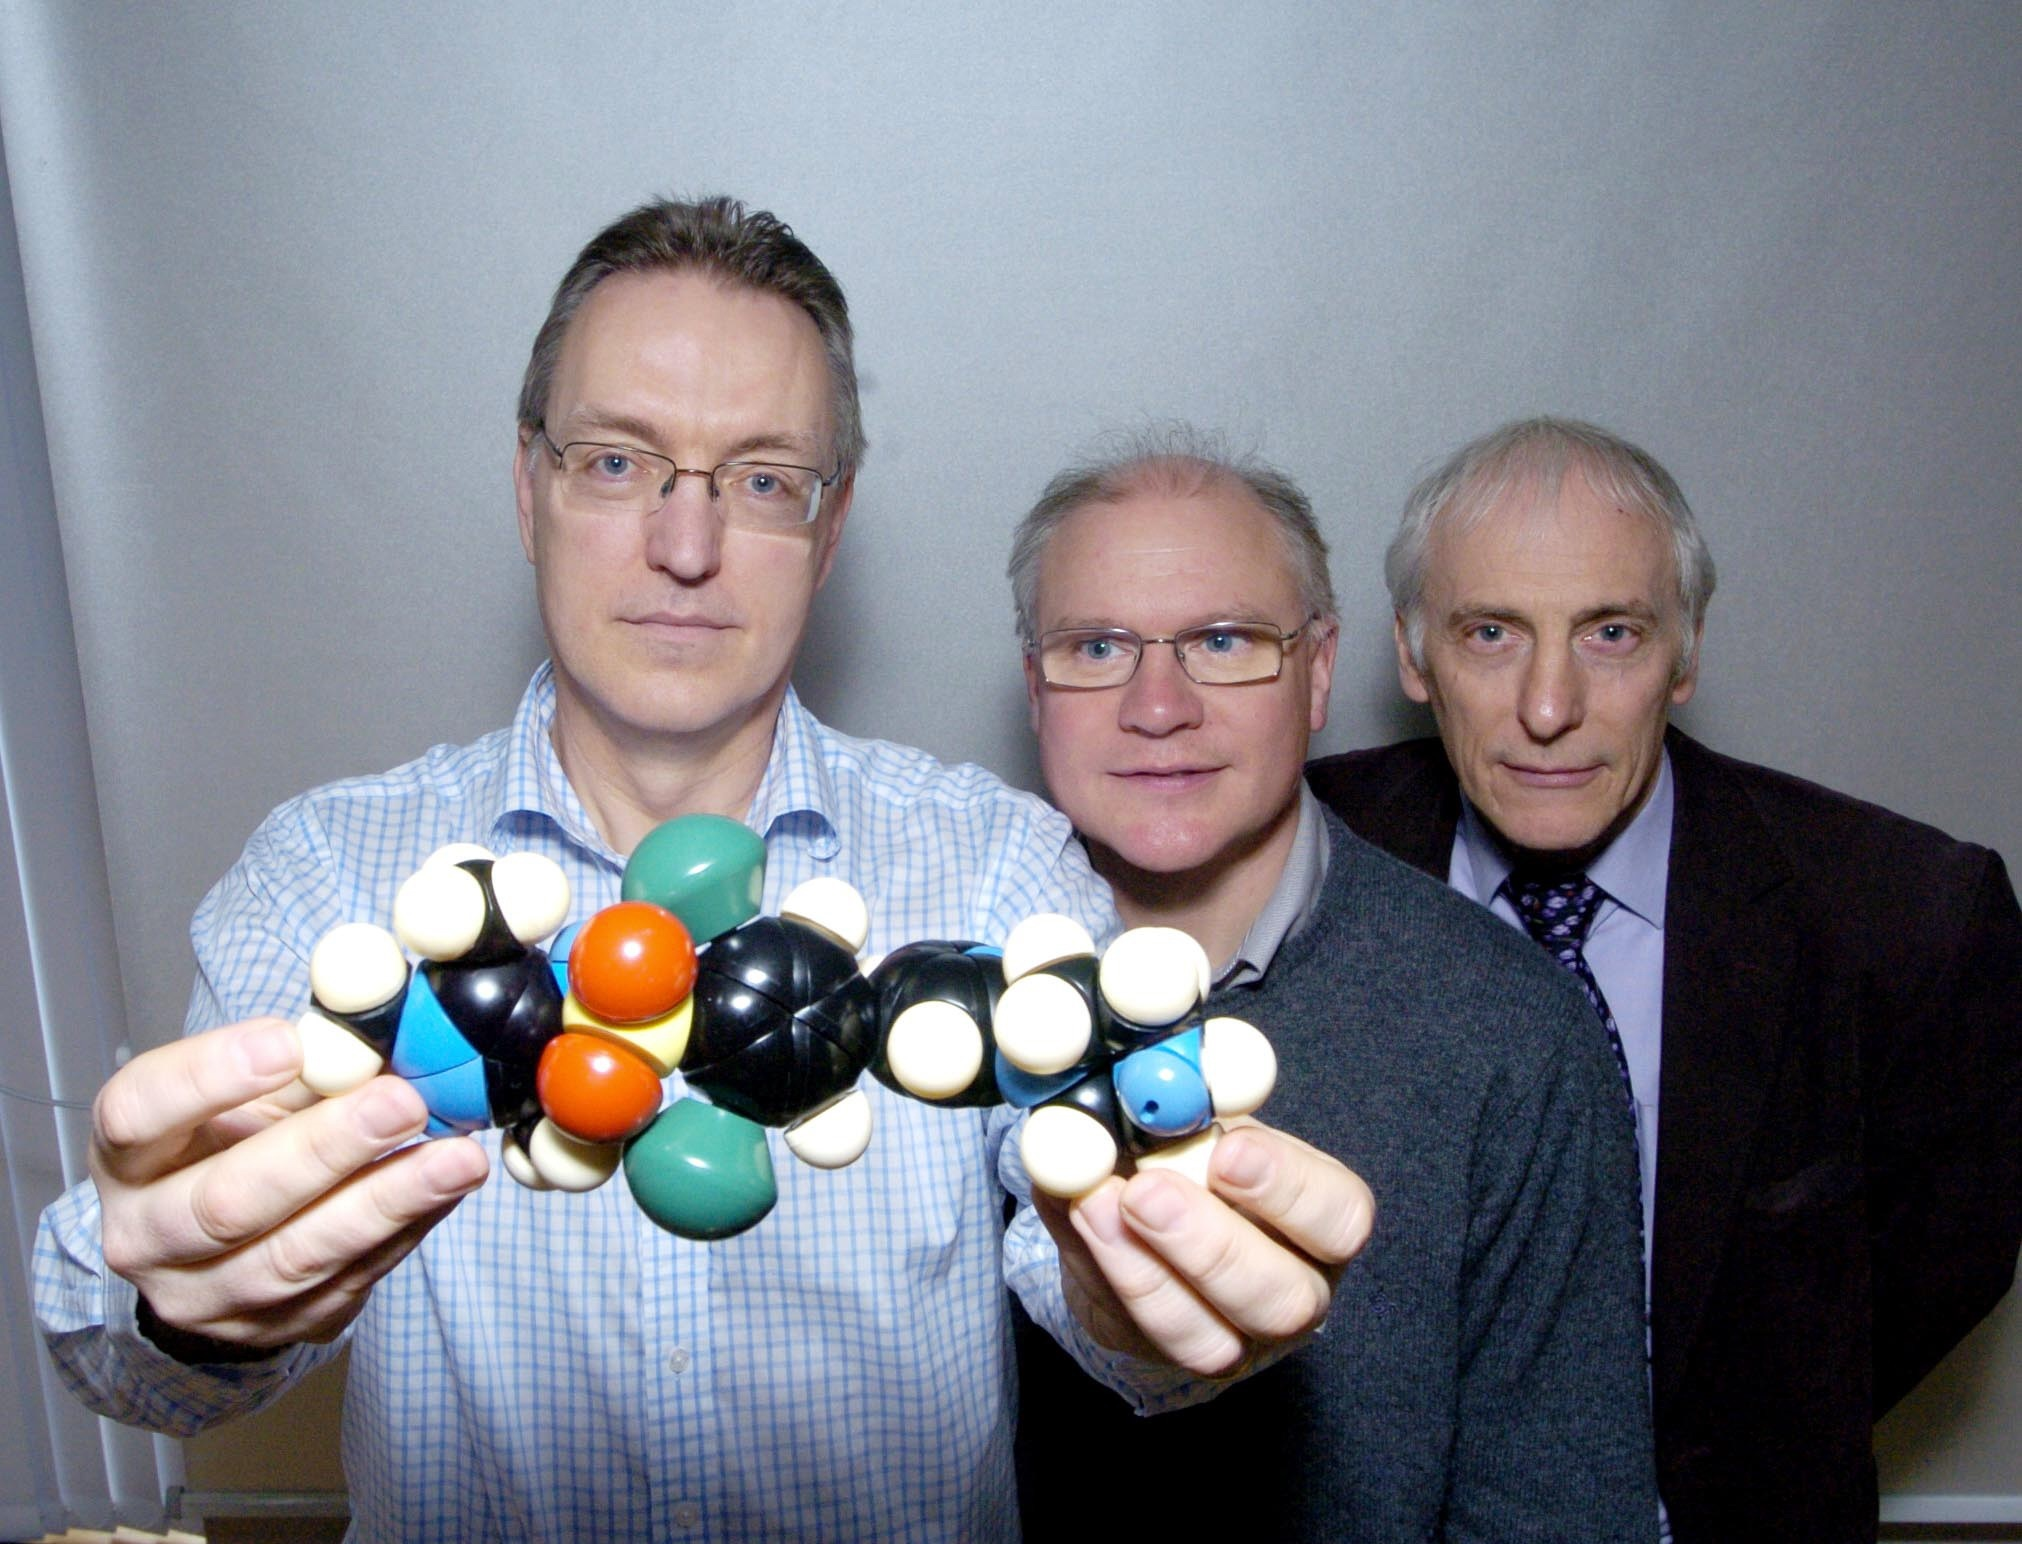 Professors Paul Wyatt, Mike Ferguson and Alan Fairlamb.